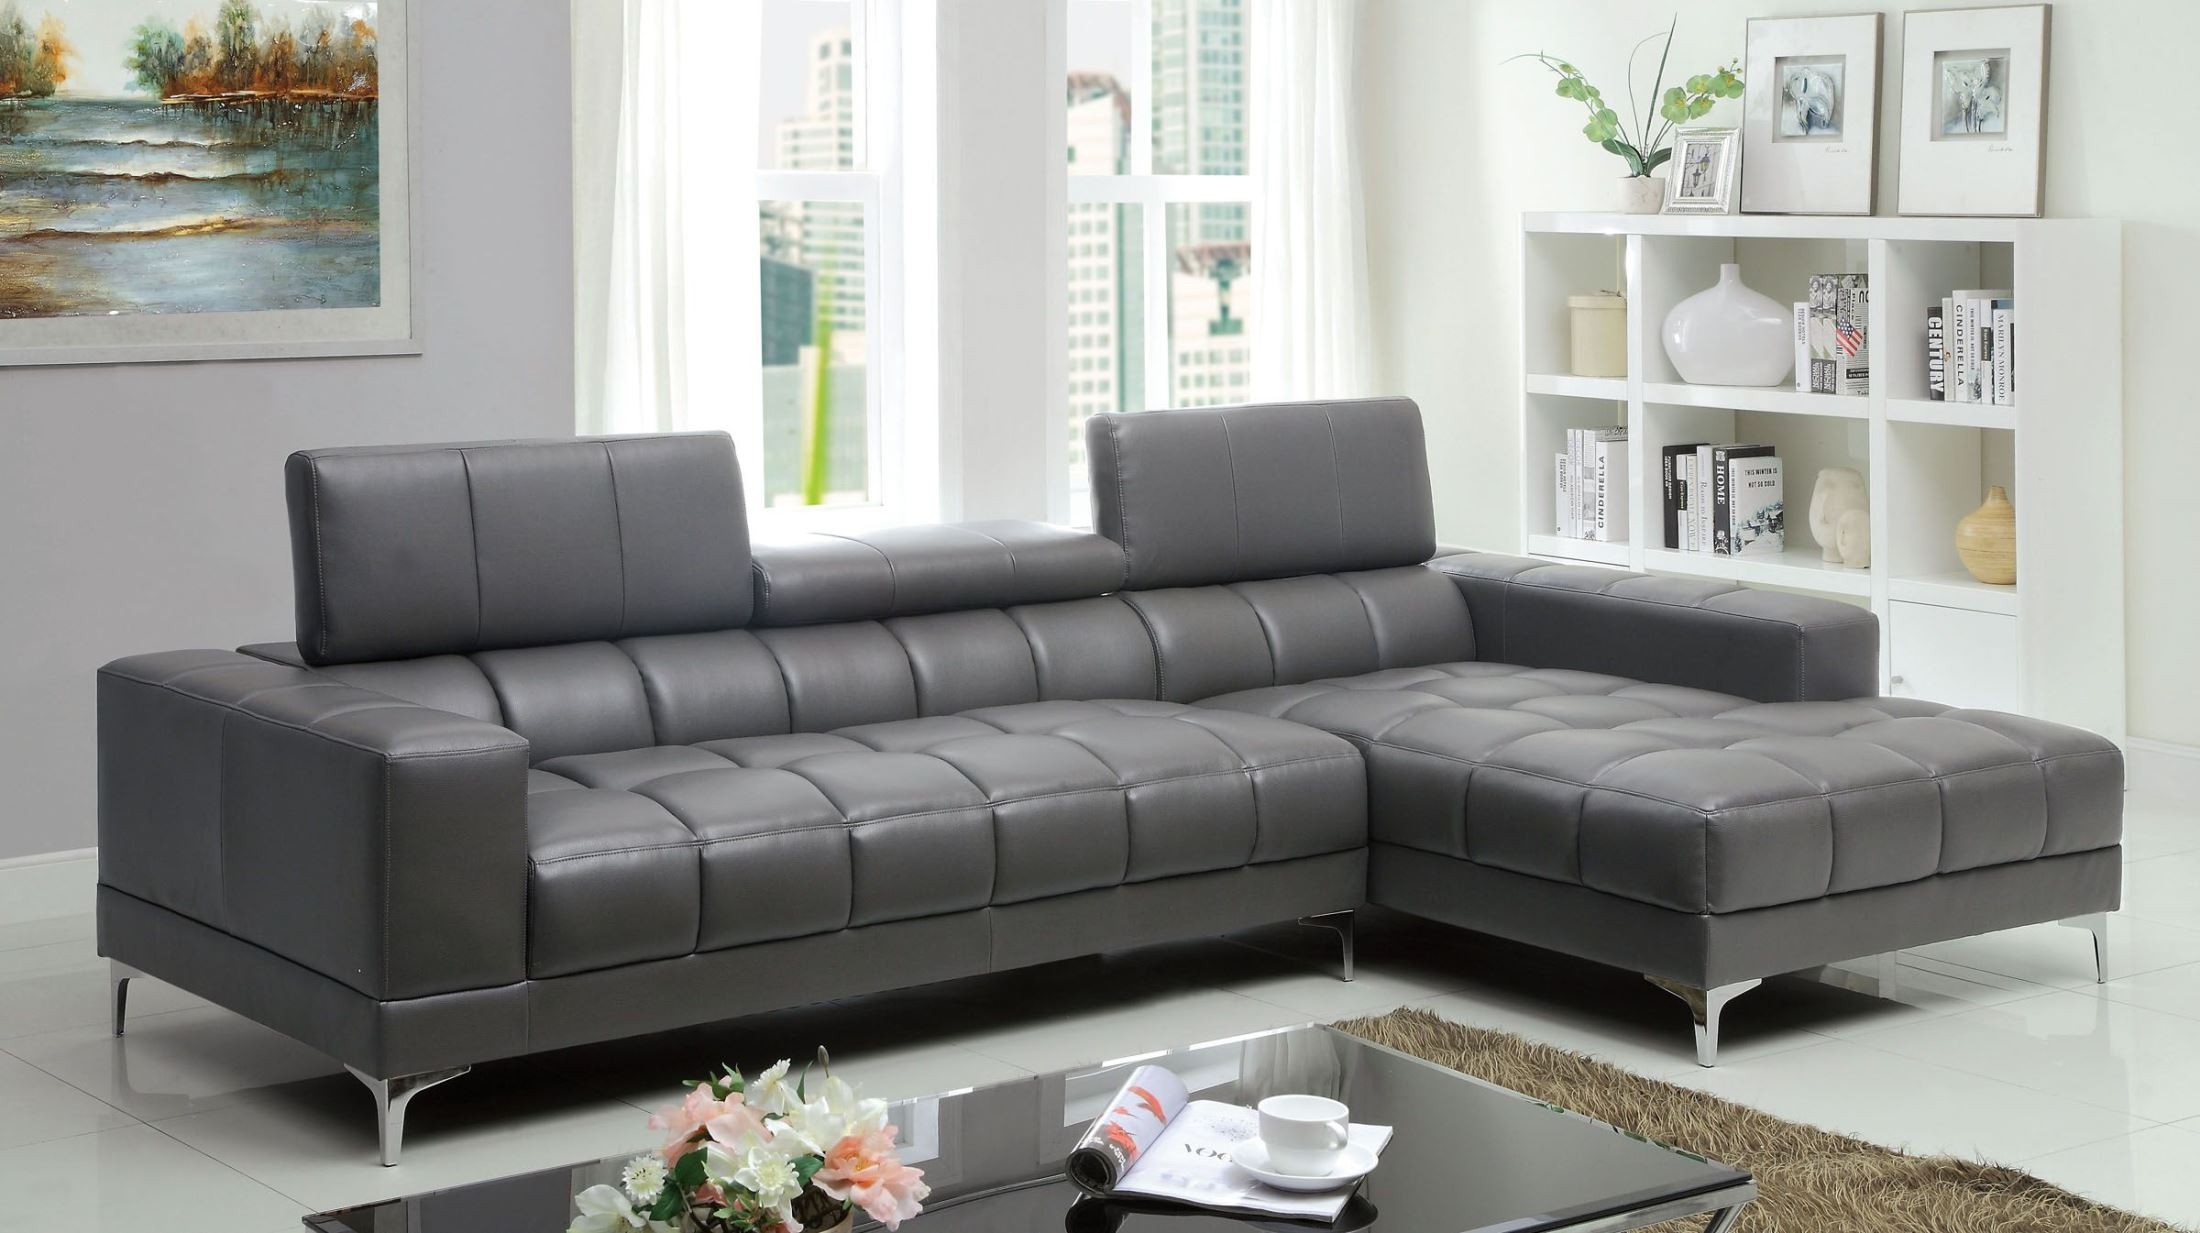 Bourdet II Gray Bonded Leather Match Sectional from Furniture of